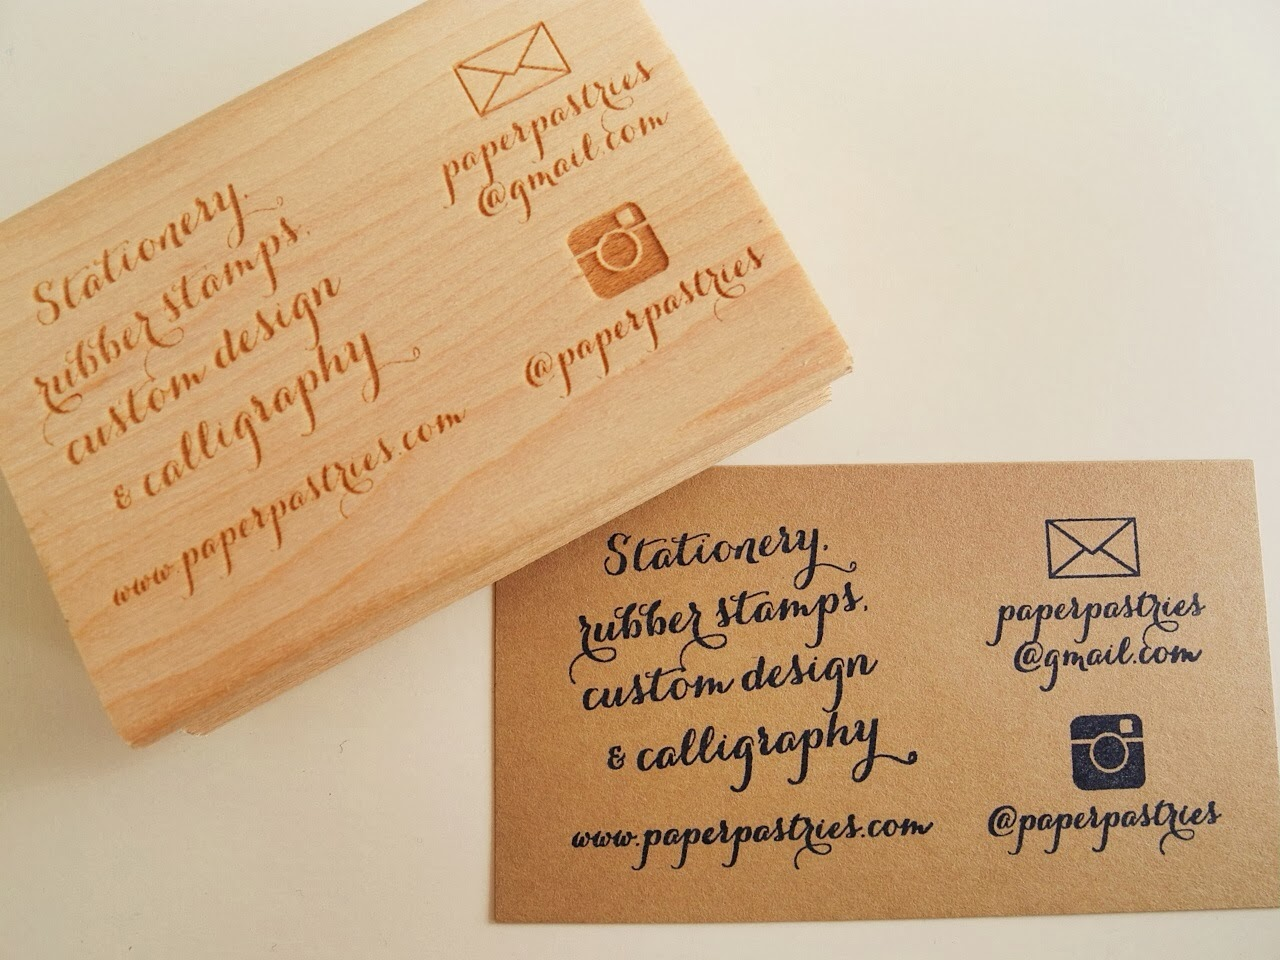 Paper pastries shop update new business card rubber stamp shop update new business card rubber stamp colourmoves